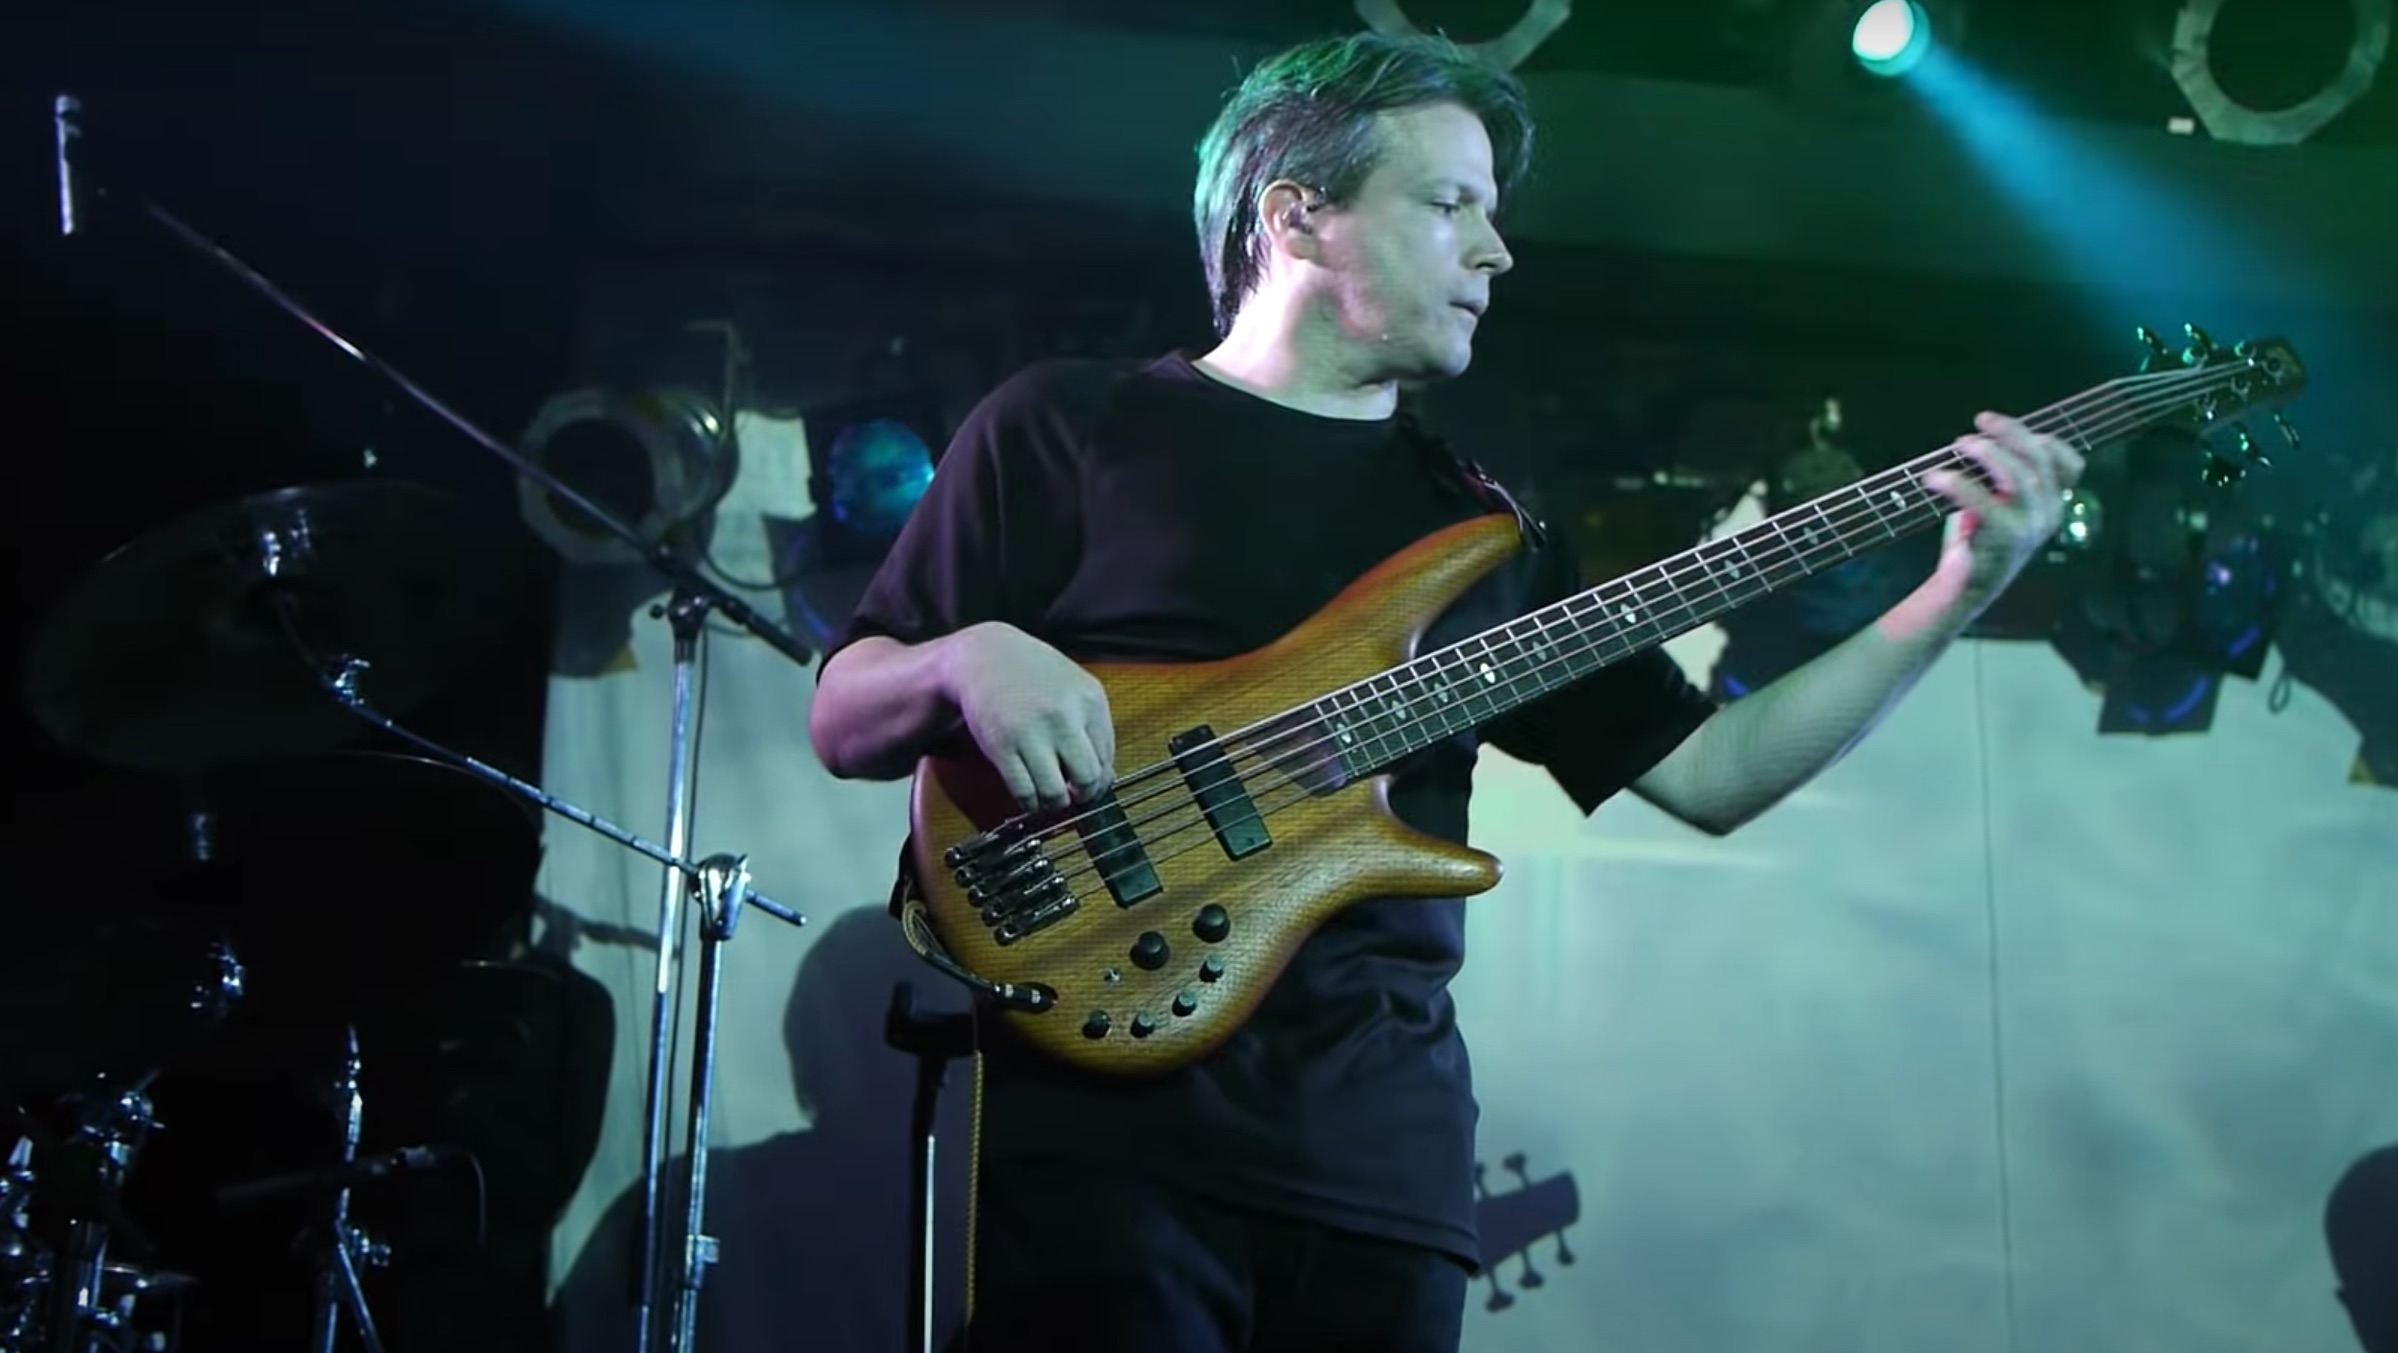 Longtime Cynic bassist Sean Malone dies aged 50 | Guitar World